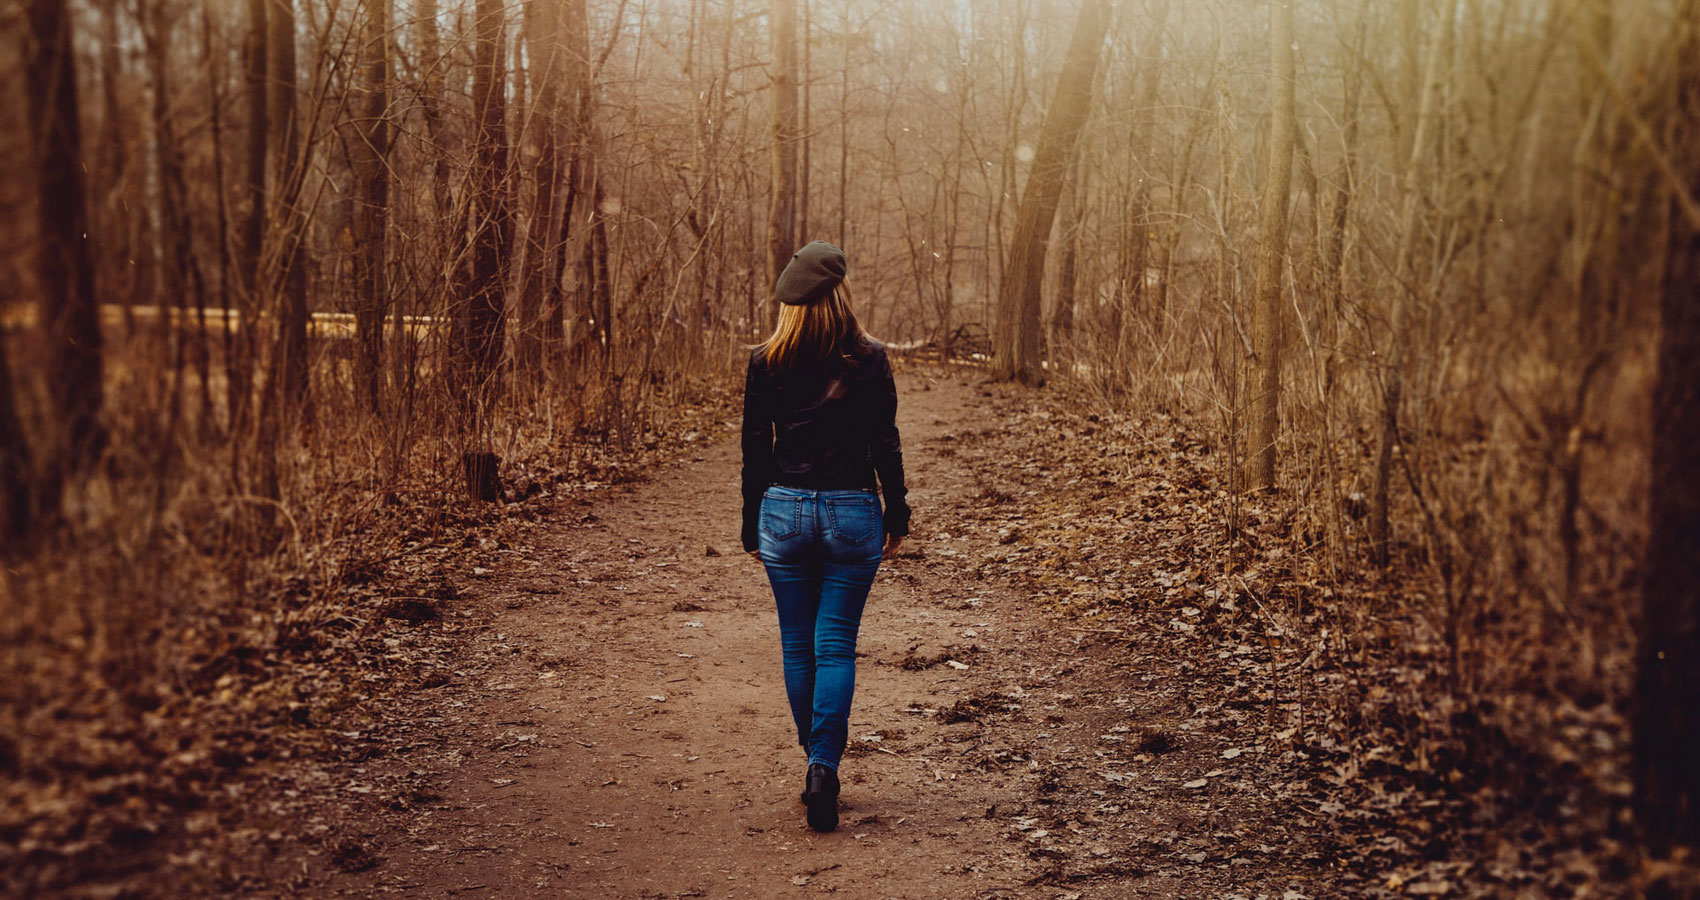 The Road Home, poetry written by Kelli J Gavin at Spillwords.com